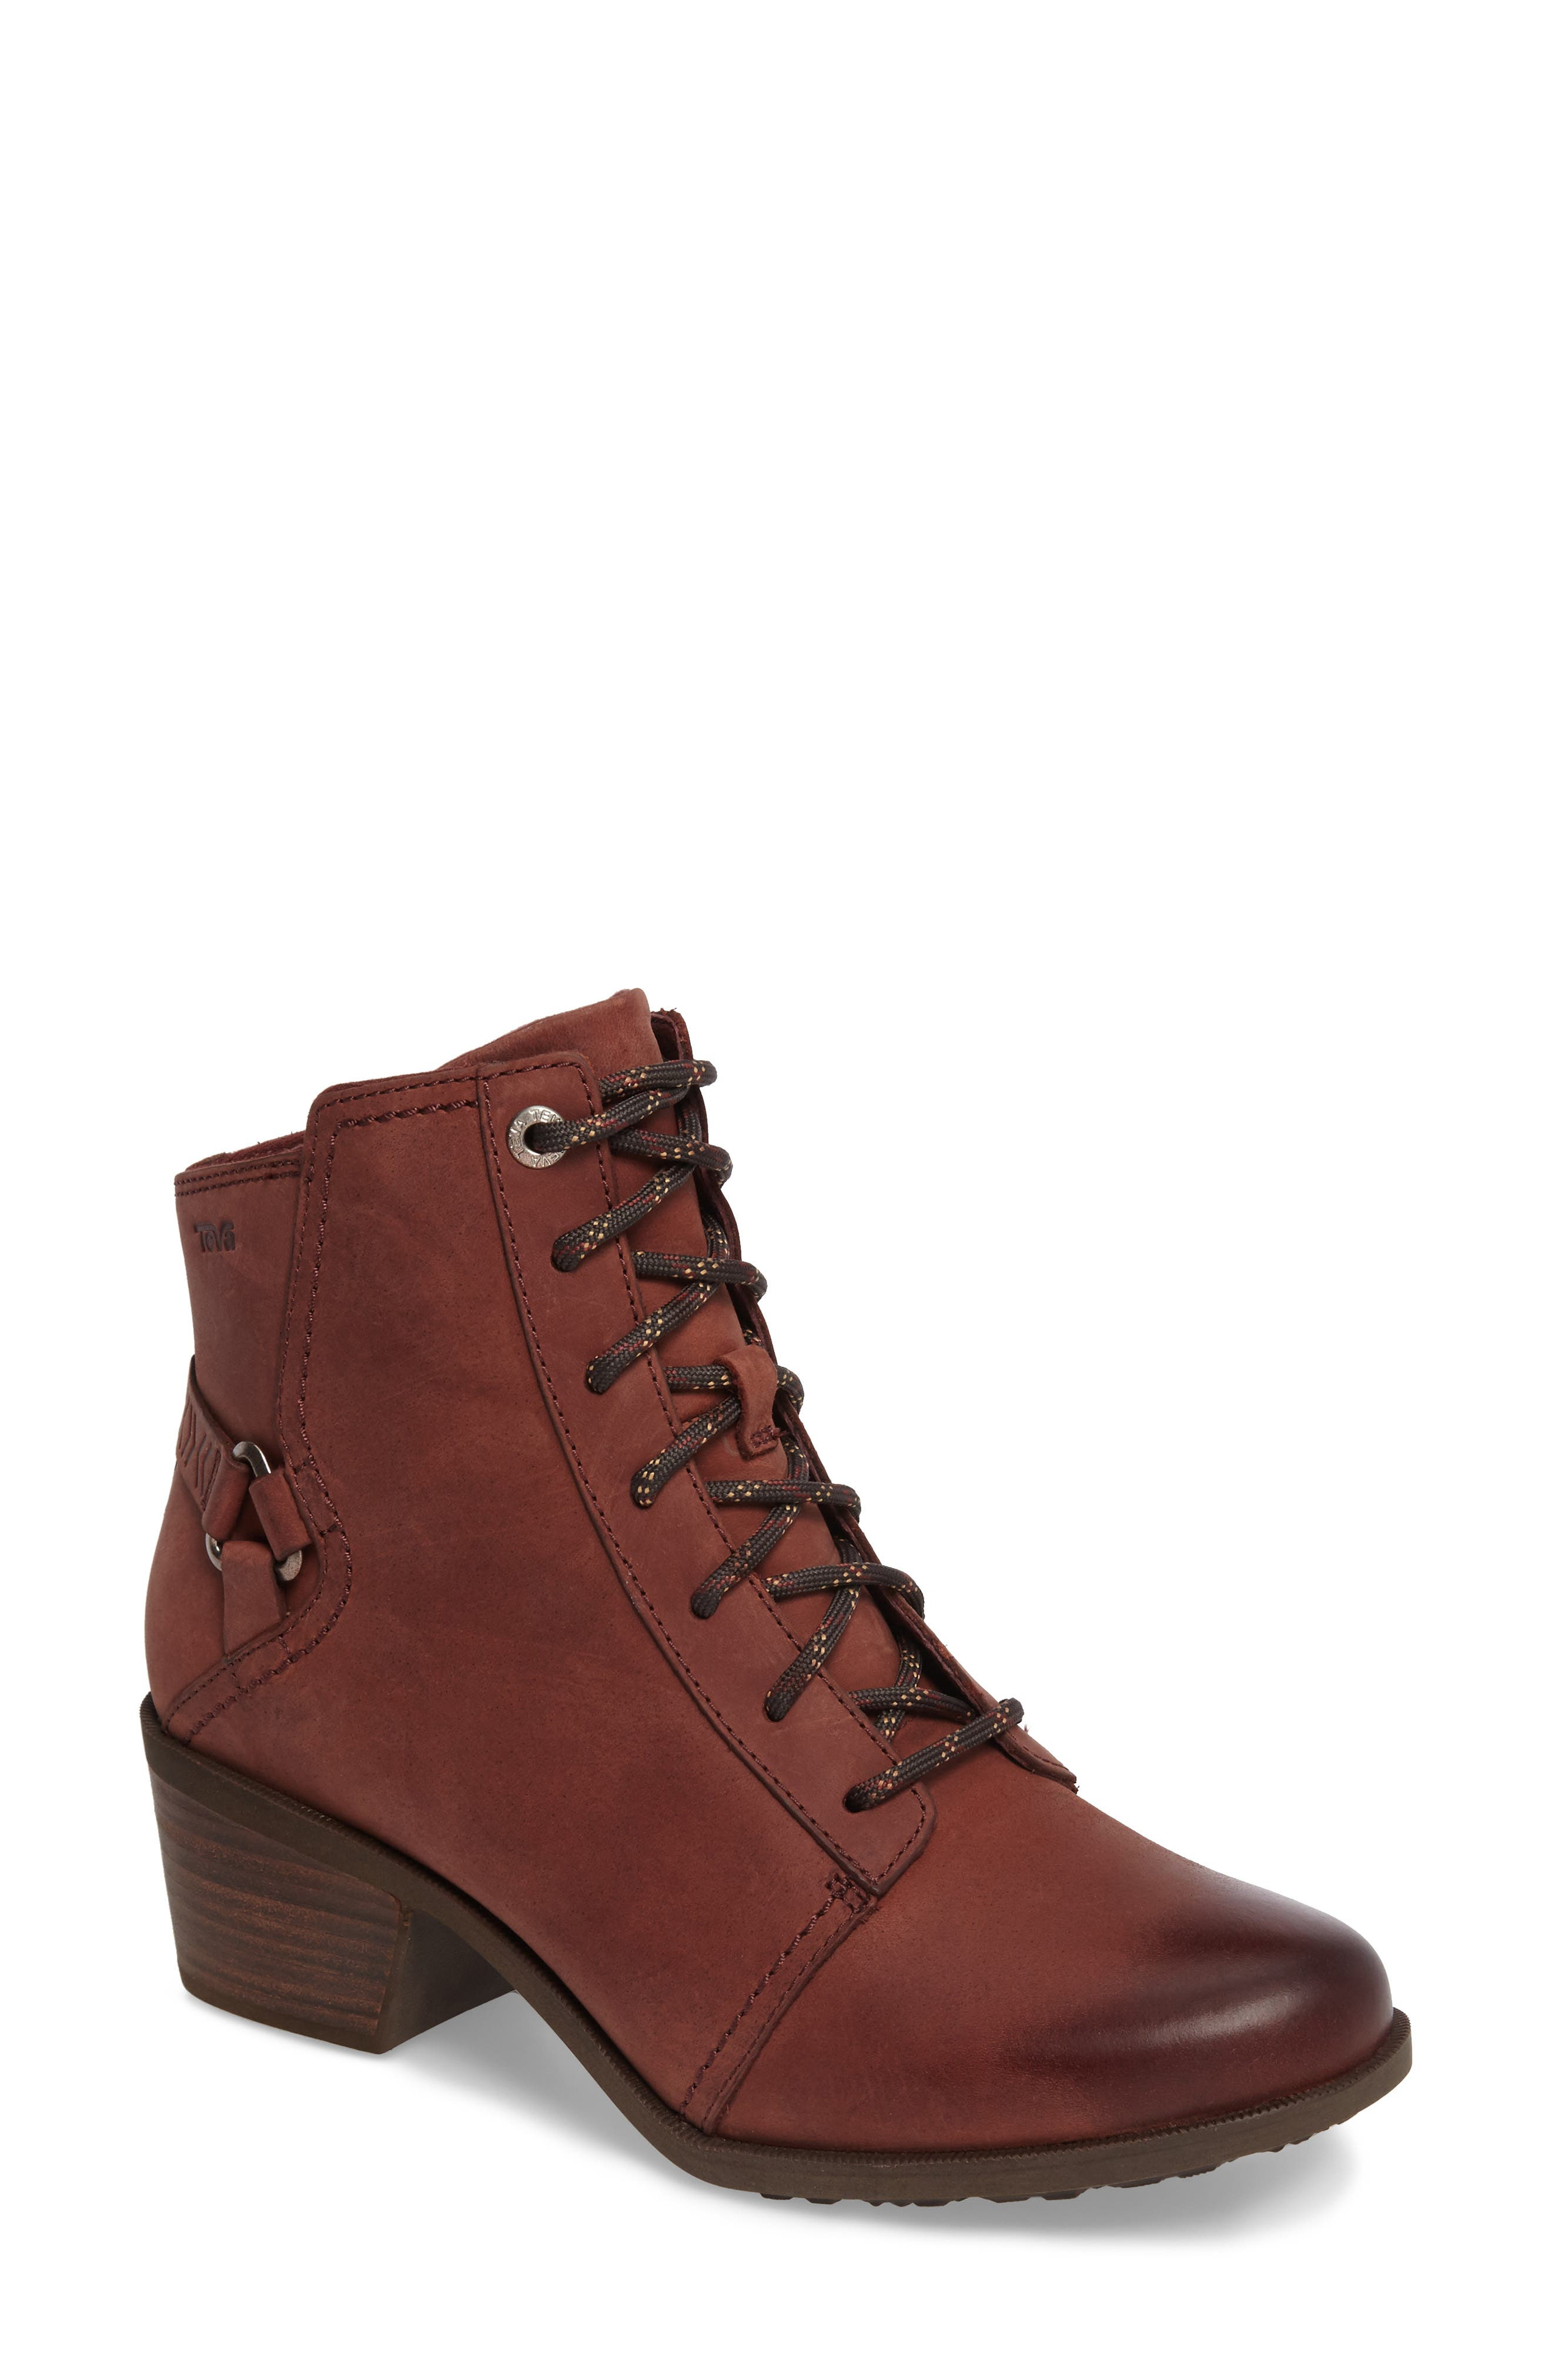 Foxy Lace-Up Waterproof Boot,                         Main,                         color, Redwood Leather